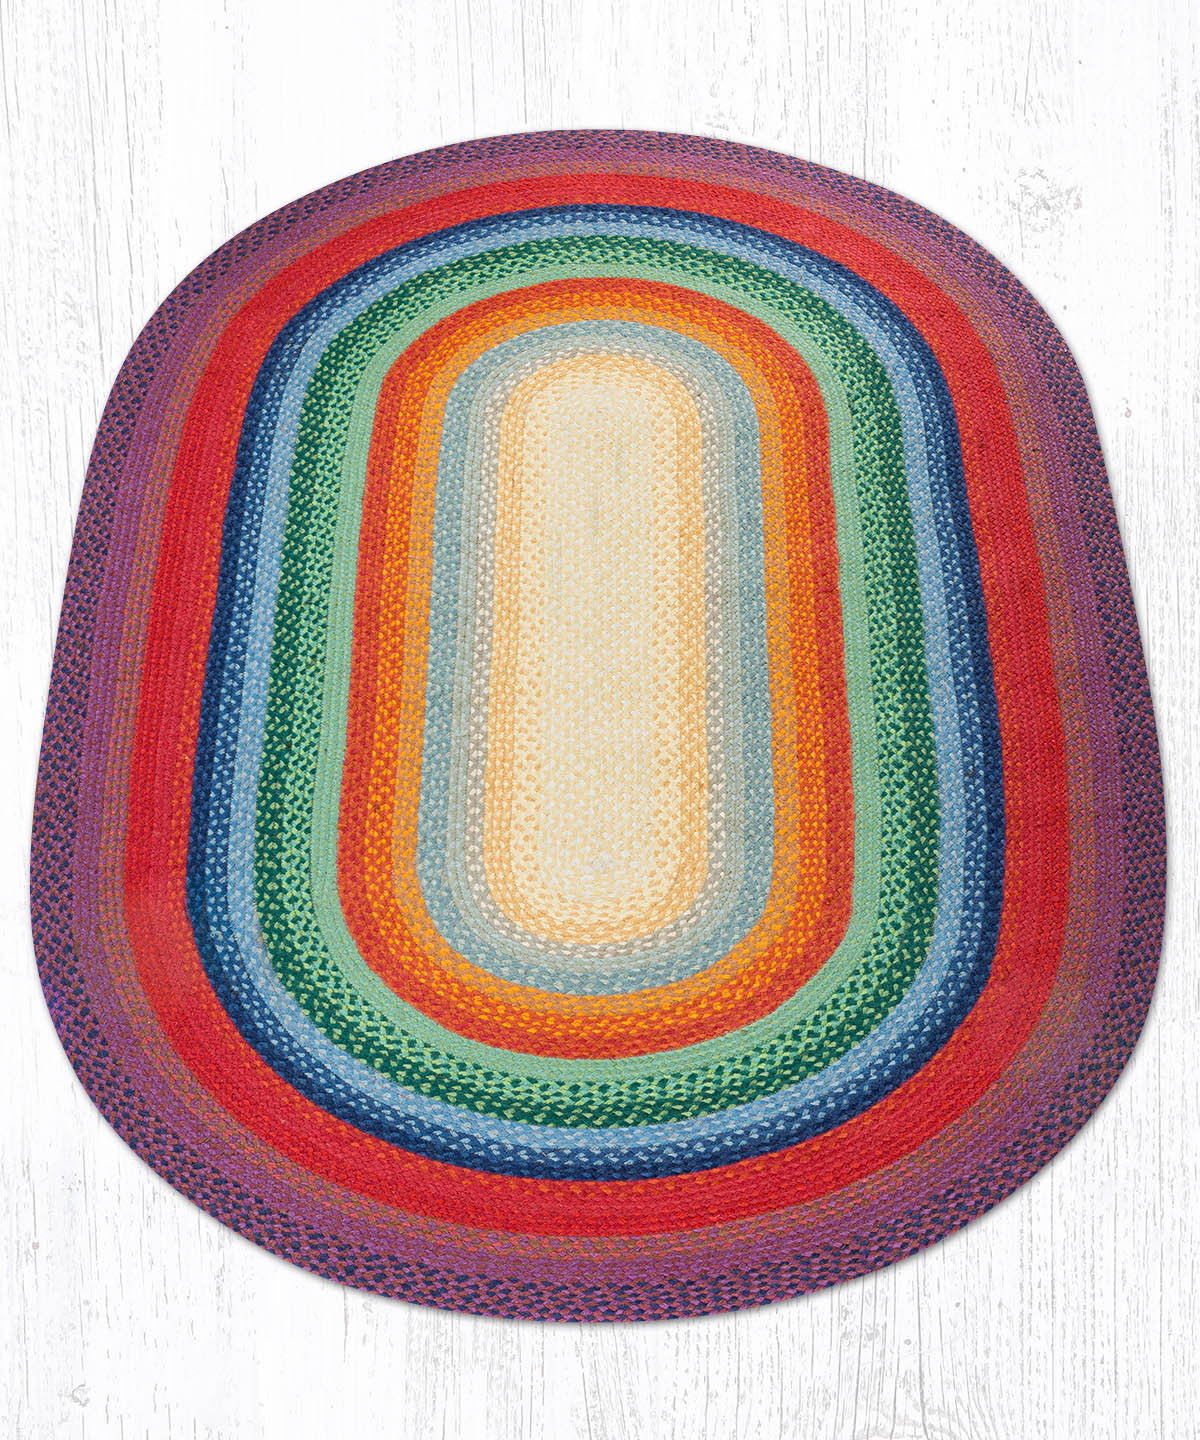 C-400 Rainbow 1 Oval Braided Rug 5'x8'